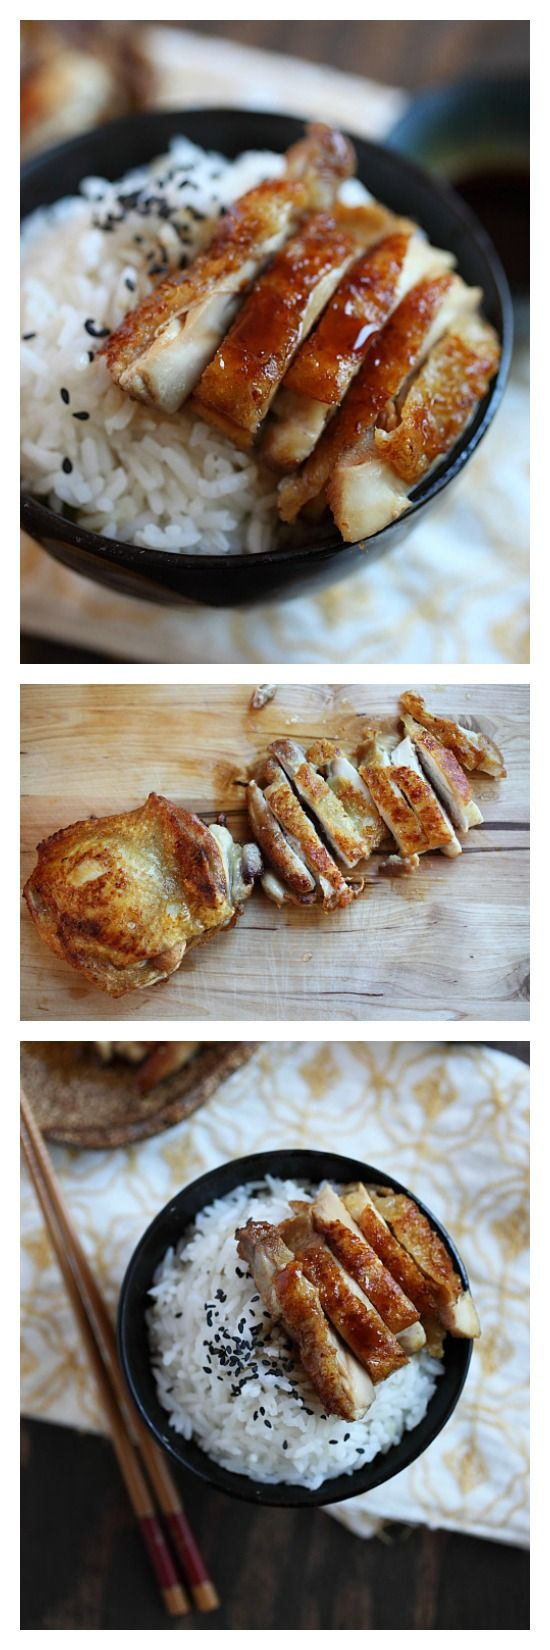 Chicken Teriyaki recipe. The easiest recipe to make teriyaki sauce (3 ingredients) and in 20 minues you have a hearty and delicious meal. http://rasamalaysia.com